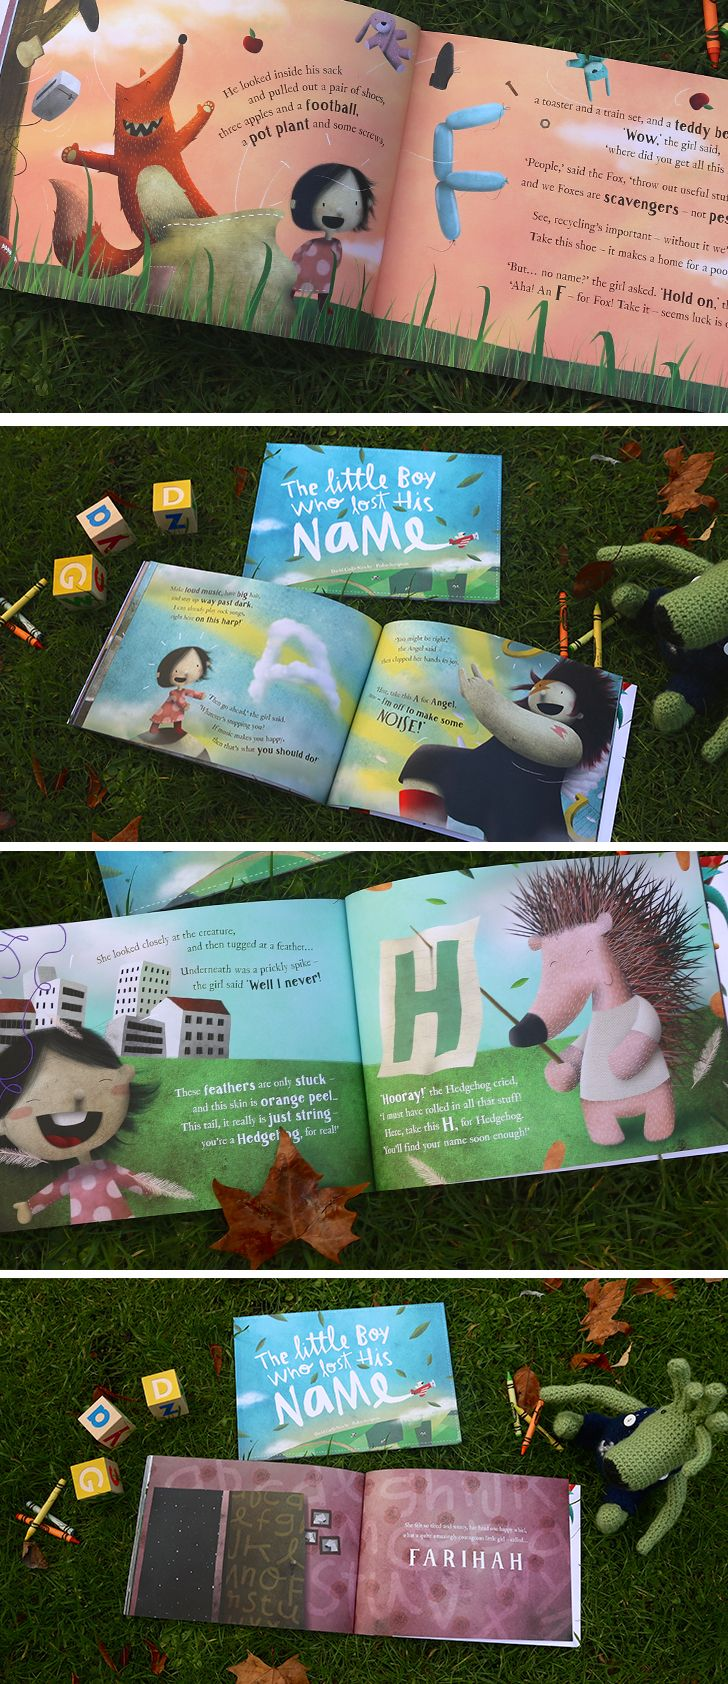 Lost My Name is a vibrant, fun-filled personalized storybook perfect for ages 0-6 years. It follows the story of a child who goes on an adventure to find their missing name, collecting letters off the exciting characters they meet. The best part is the extra special surprise at the end- your child's name! Why not preview what your little one's book will look like? It's super easy to create and can be shipped anywhere in the world for free!